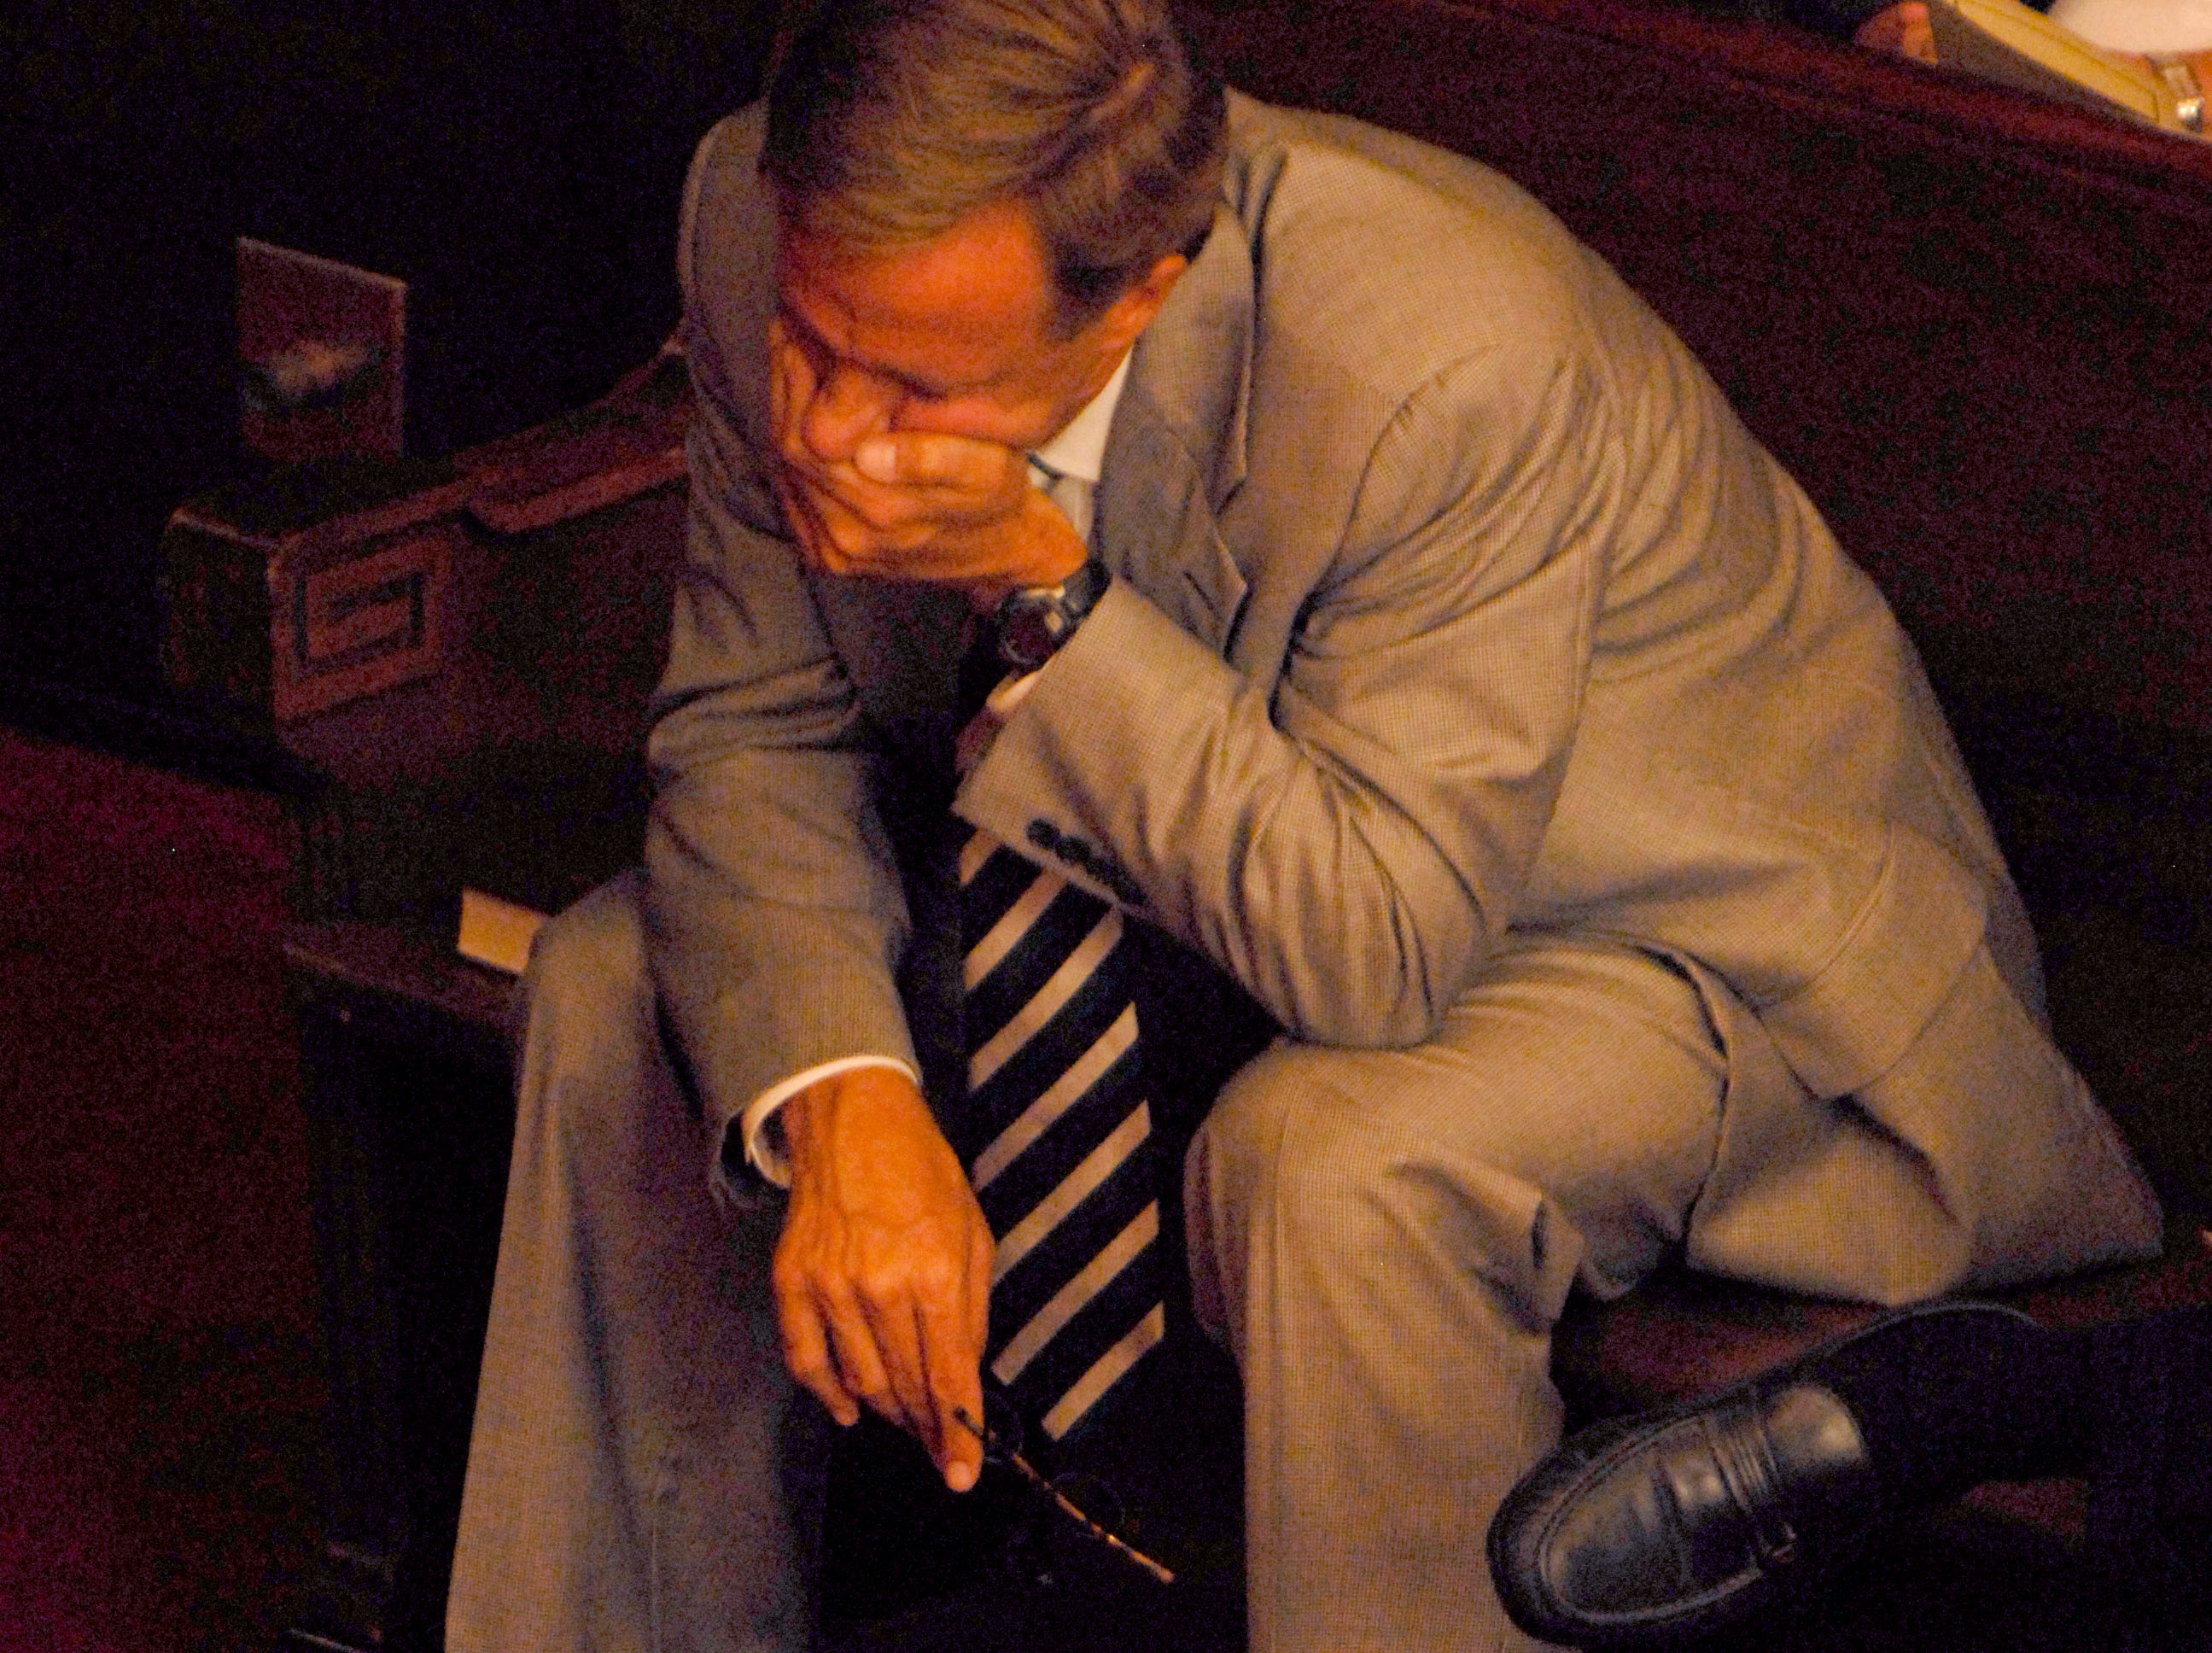 Knoxville Mayor Bill Haslam  bows his head during a prayer Tuesday, July 29, 2008, during a noon ecumenical service at First Baptist Church of Knoxville for the Tennessee Valley Unitarian Universalist Church congregation and the victims of a Sunday morning shooting.